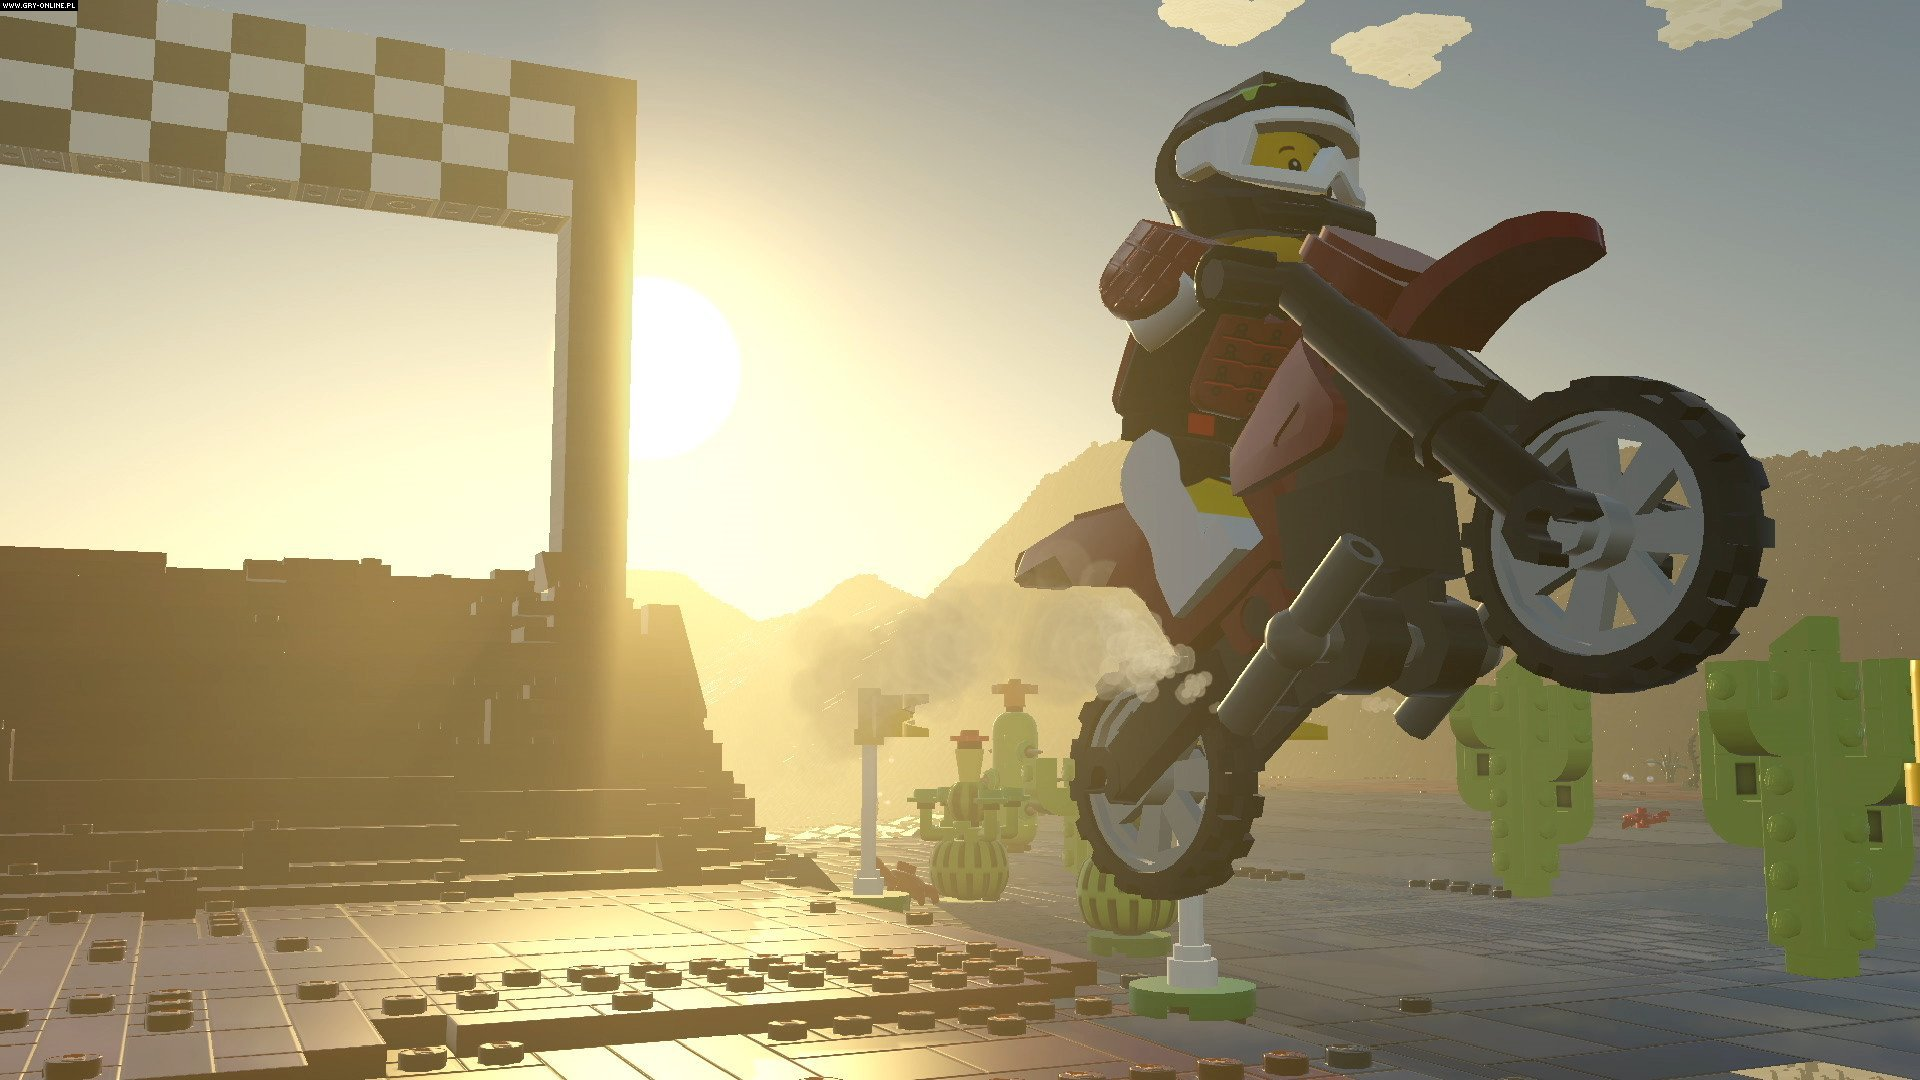 LEGO Worlds PC, PS4, XONE Games Image 7/21, Traveller's Tales, Warner Bros. Interactive Entertainment